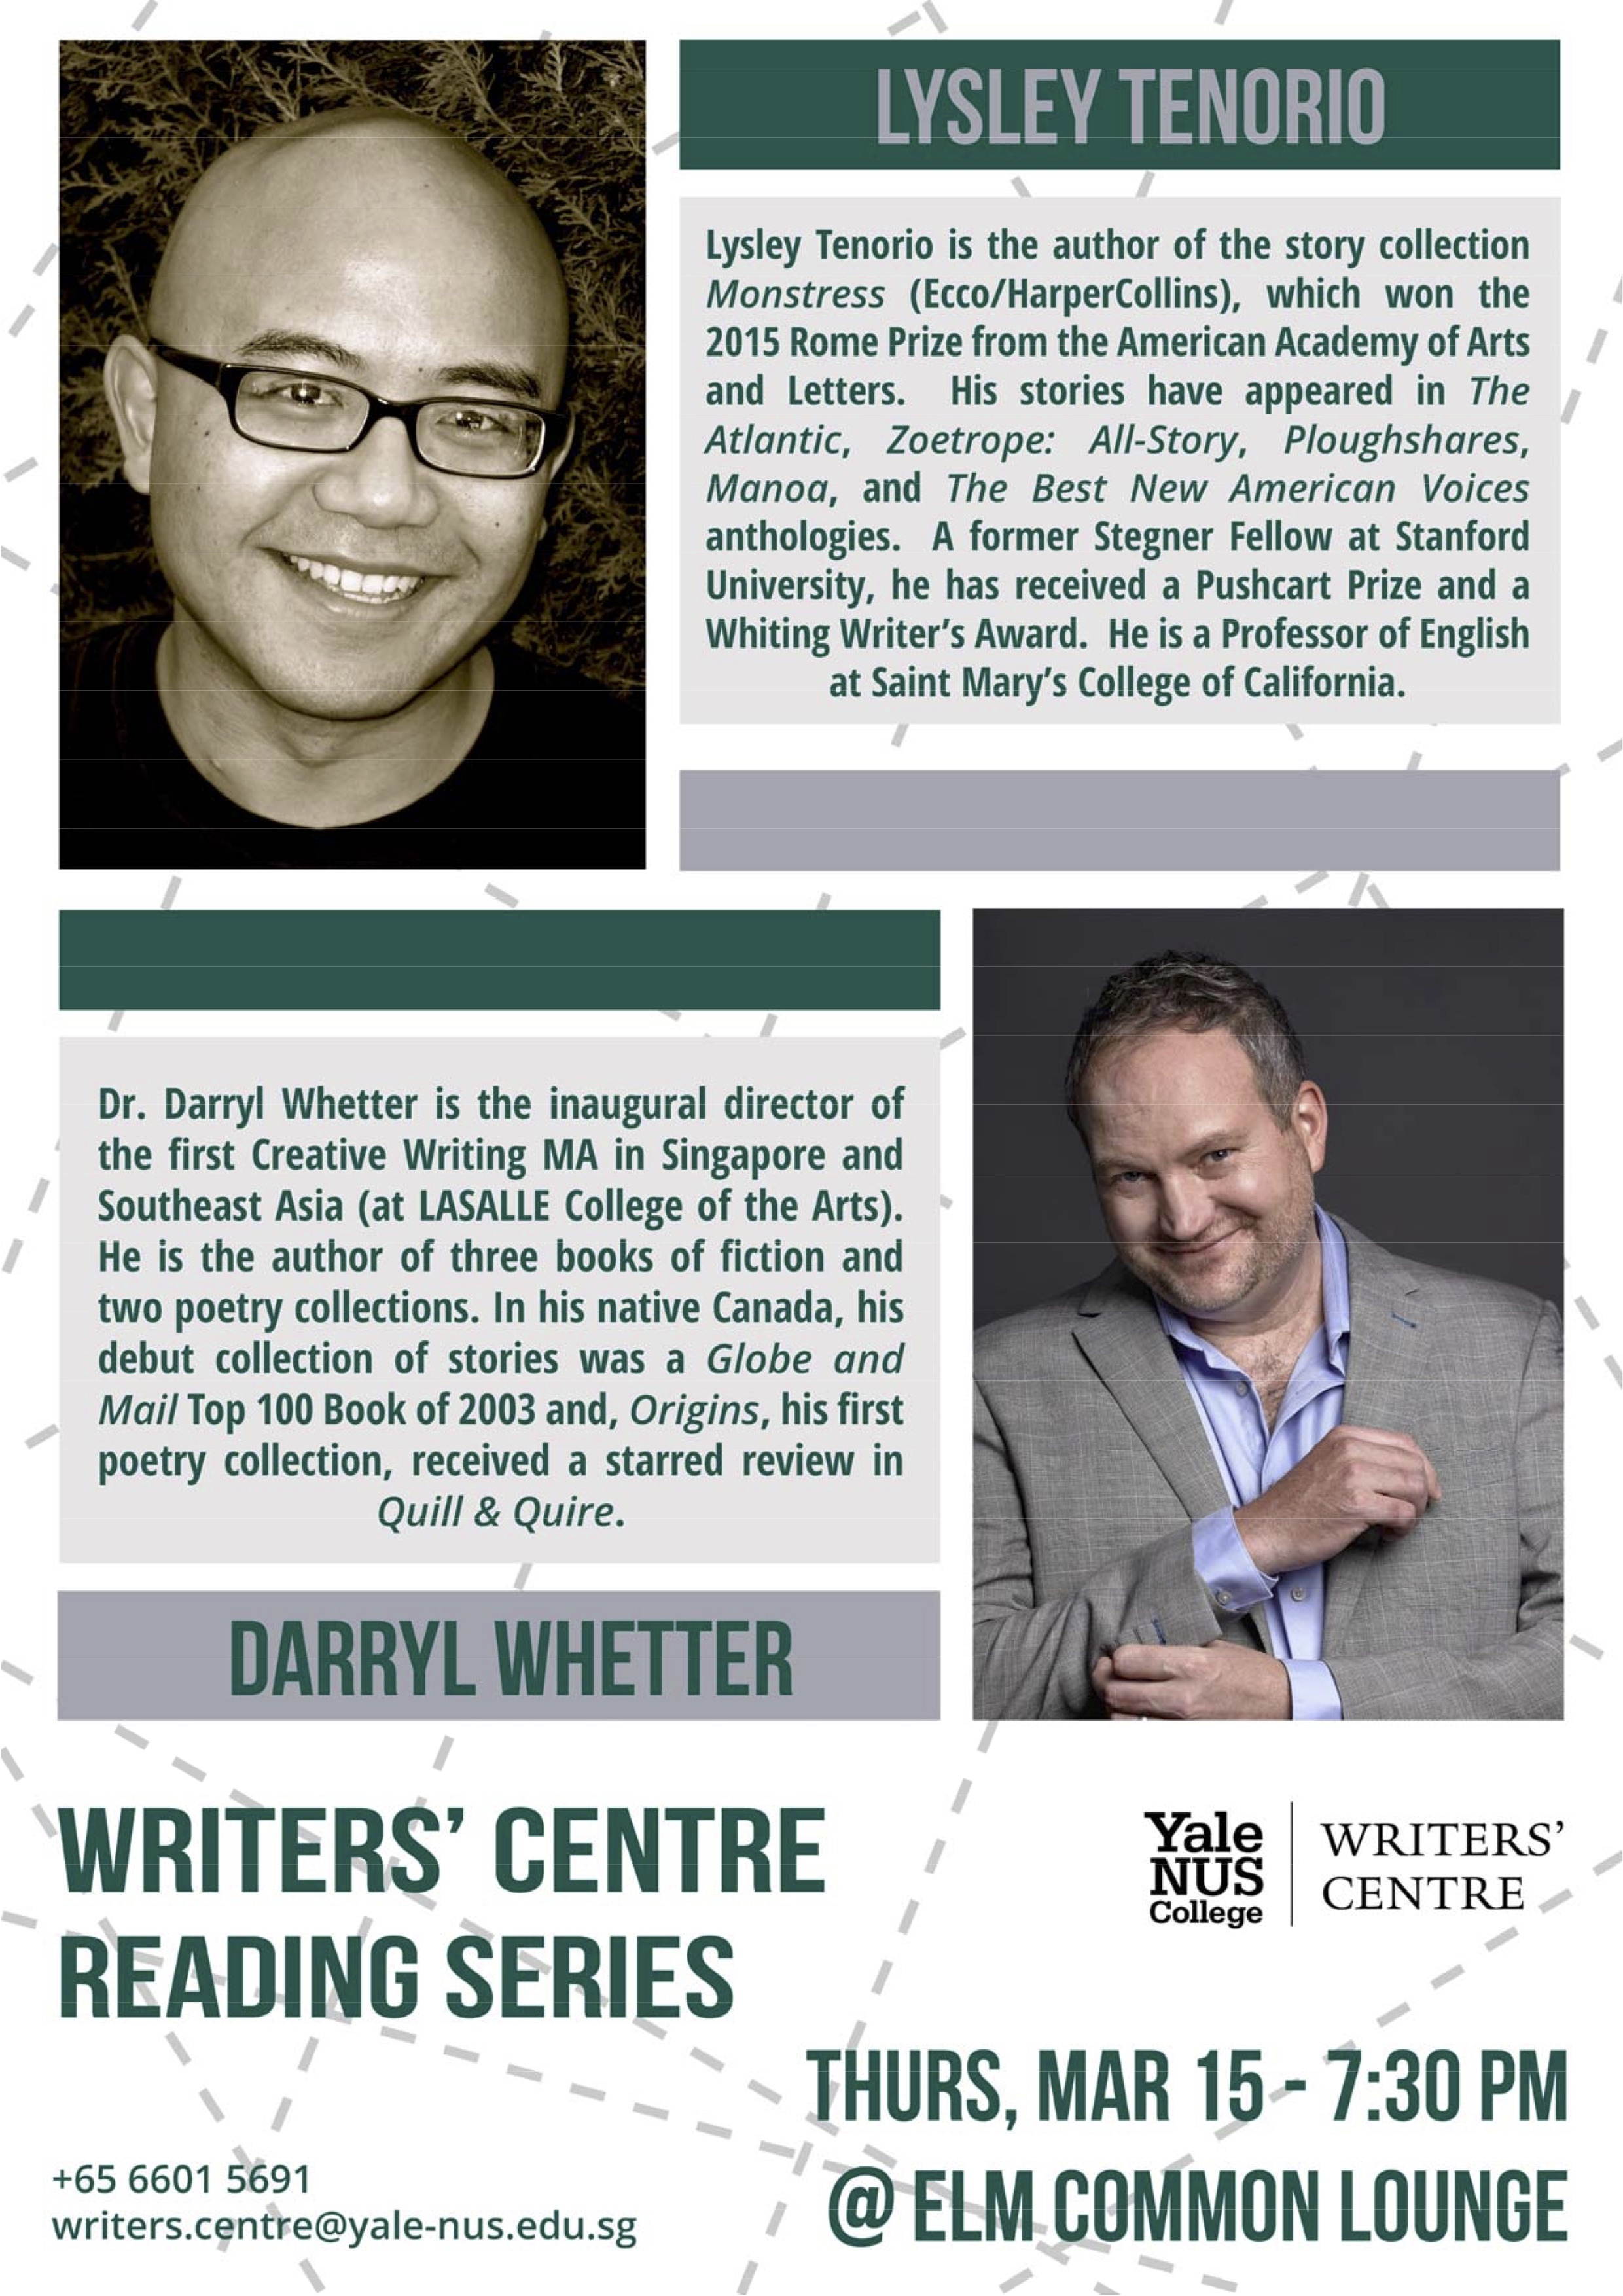 March Reading Sesries - Yale-NUS College Writers' Centre.jpg